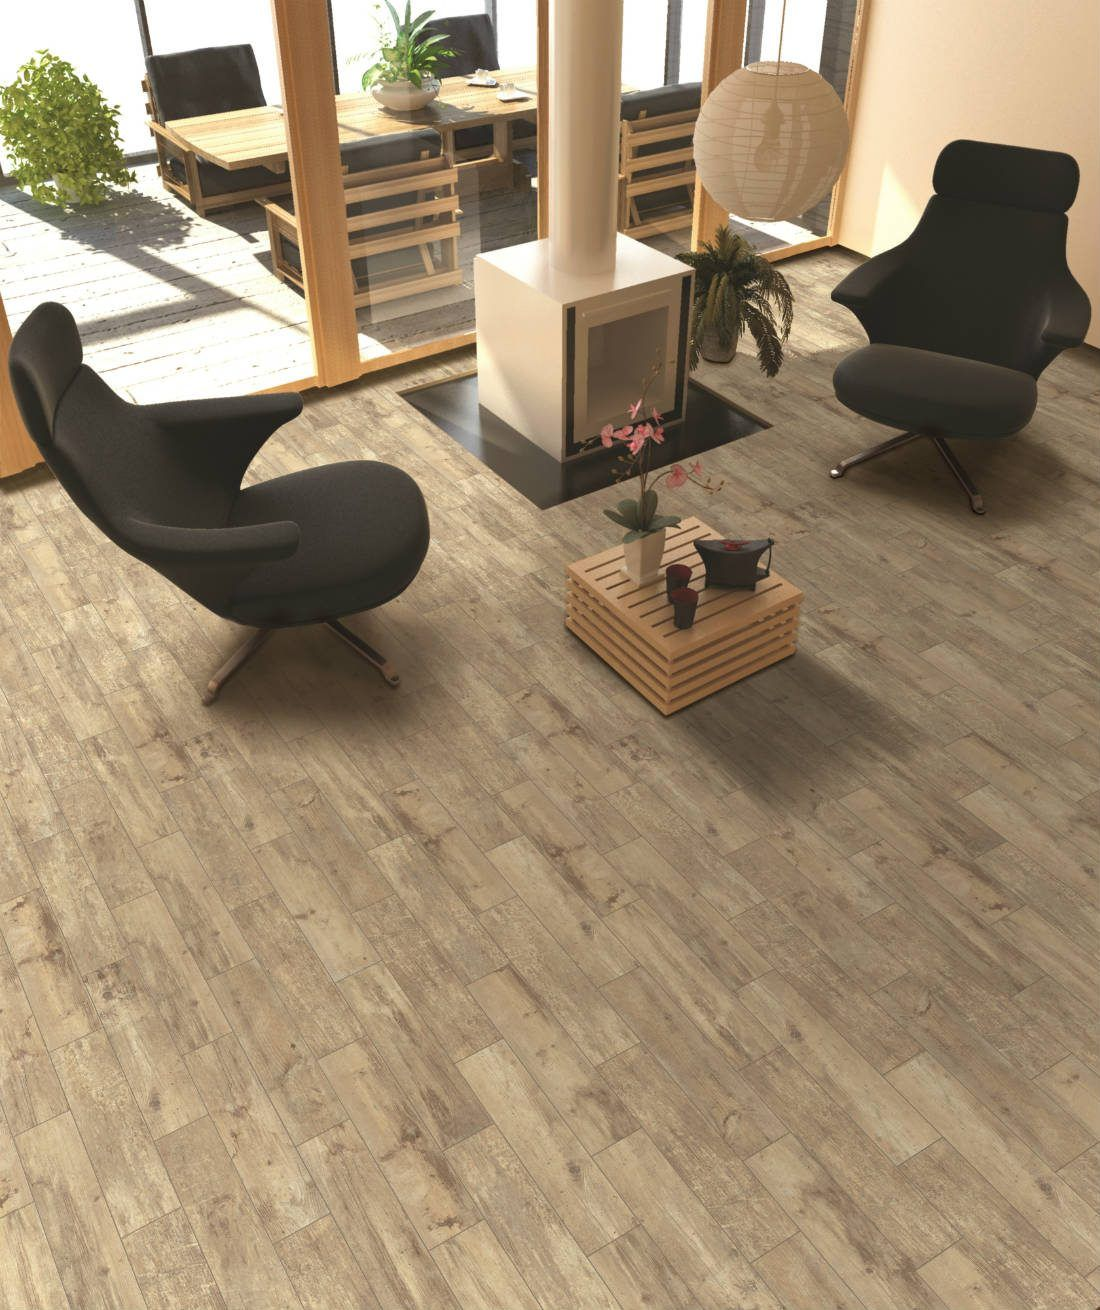 Wood Tone Ceramic Tile Is The Ideal Flooring For This